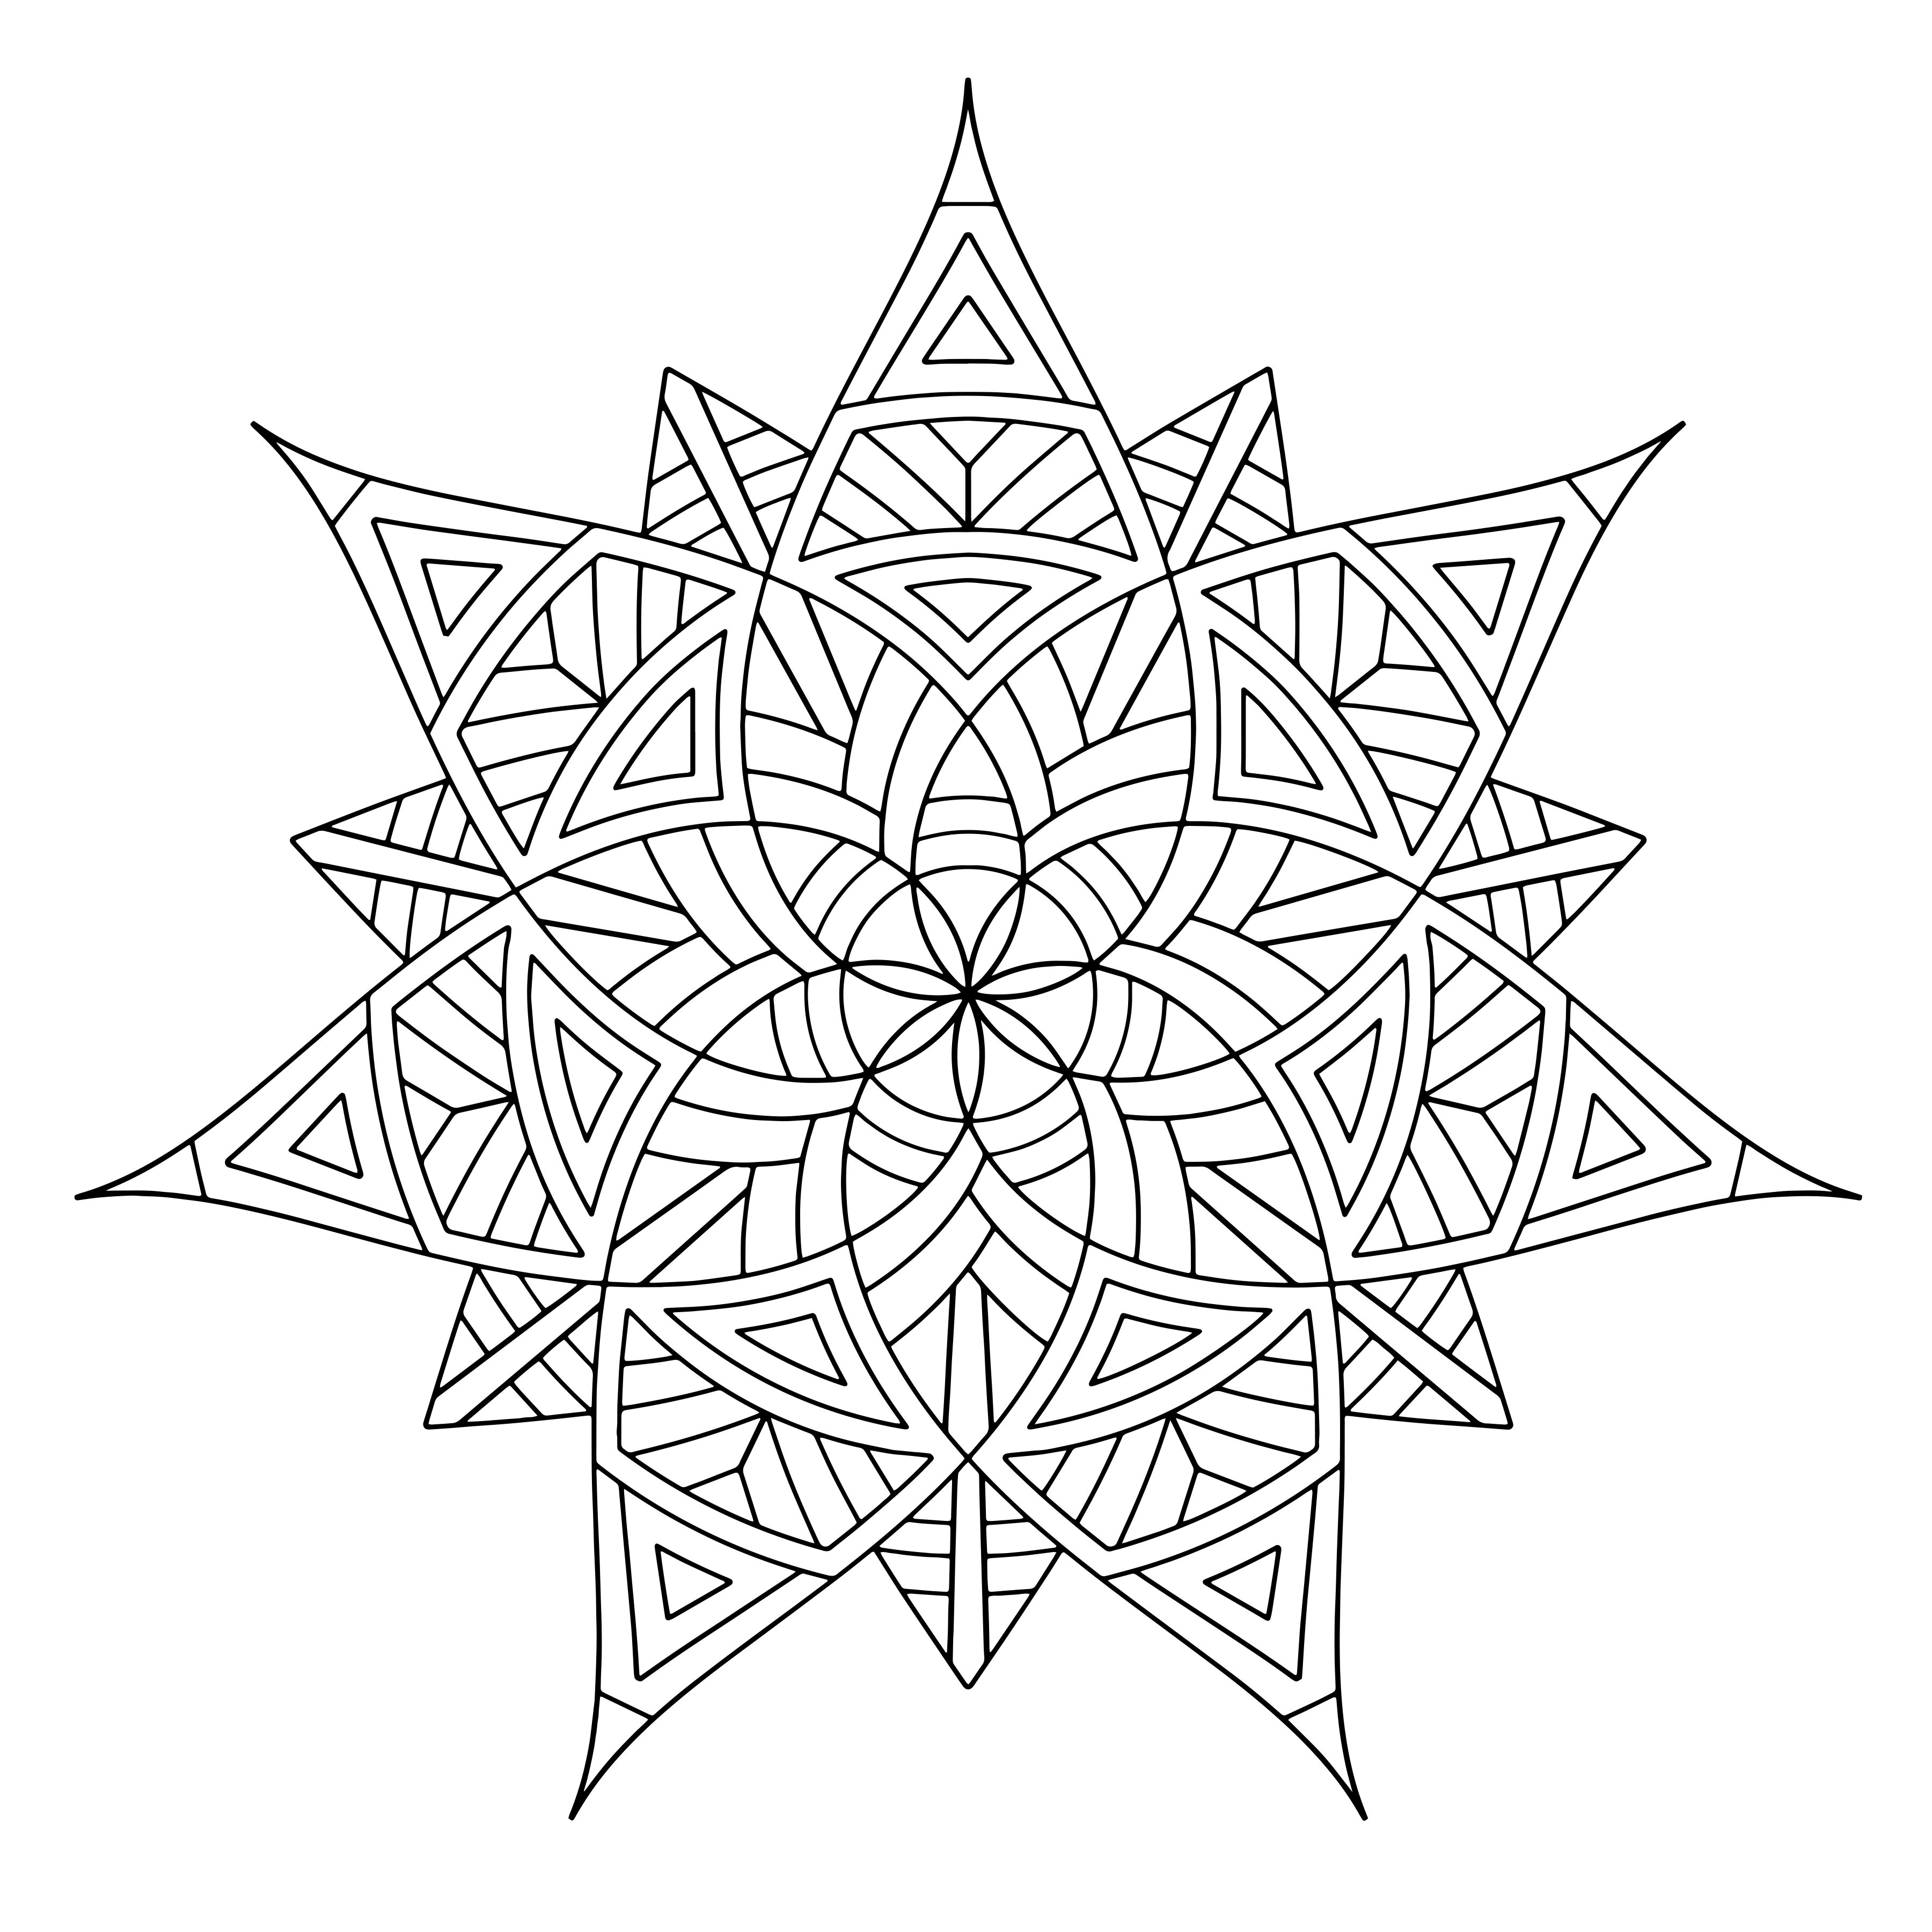 pattern colouring pages to print free printable geometric coloring pages for adults colouring to print pattern pages